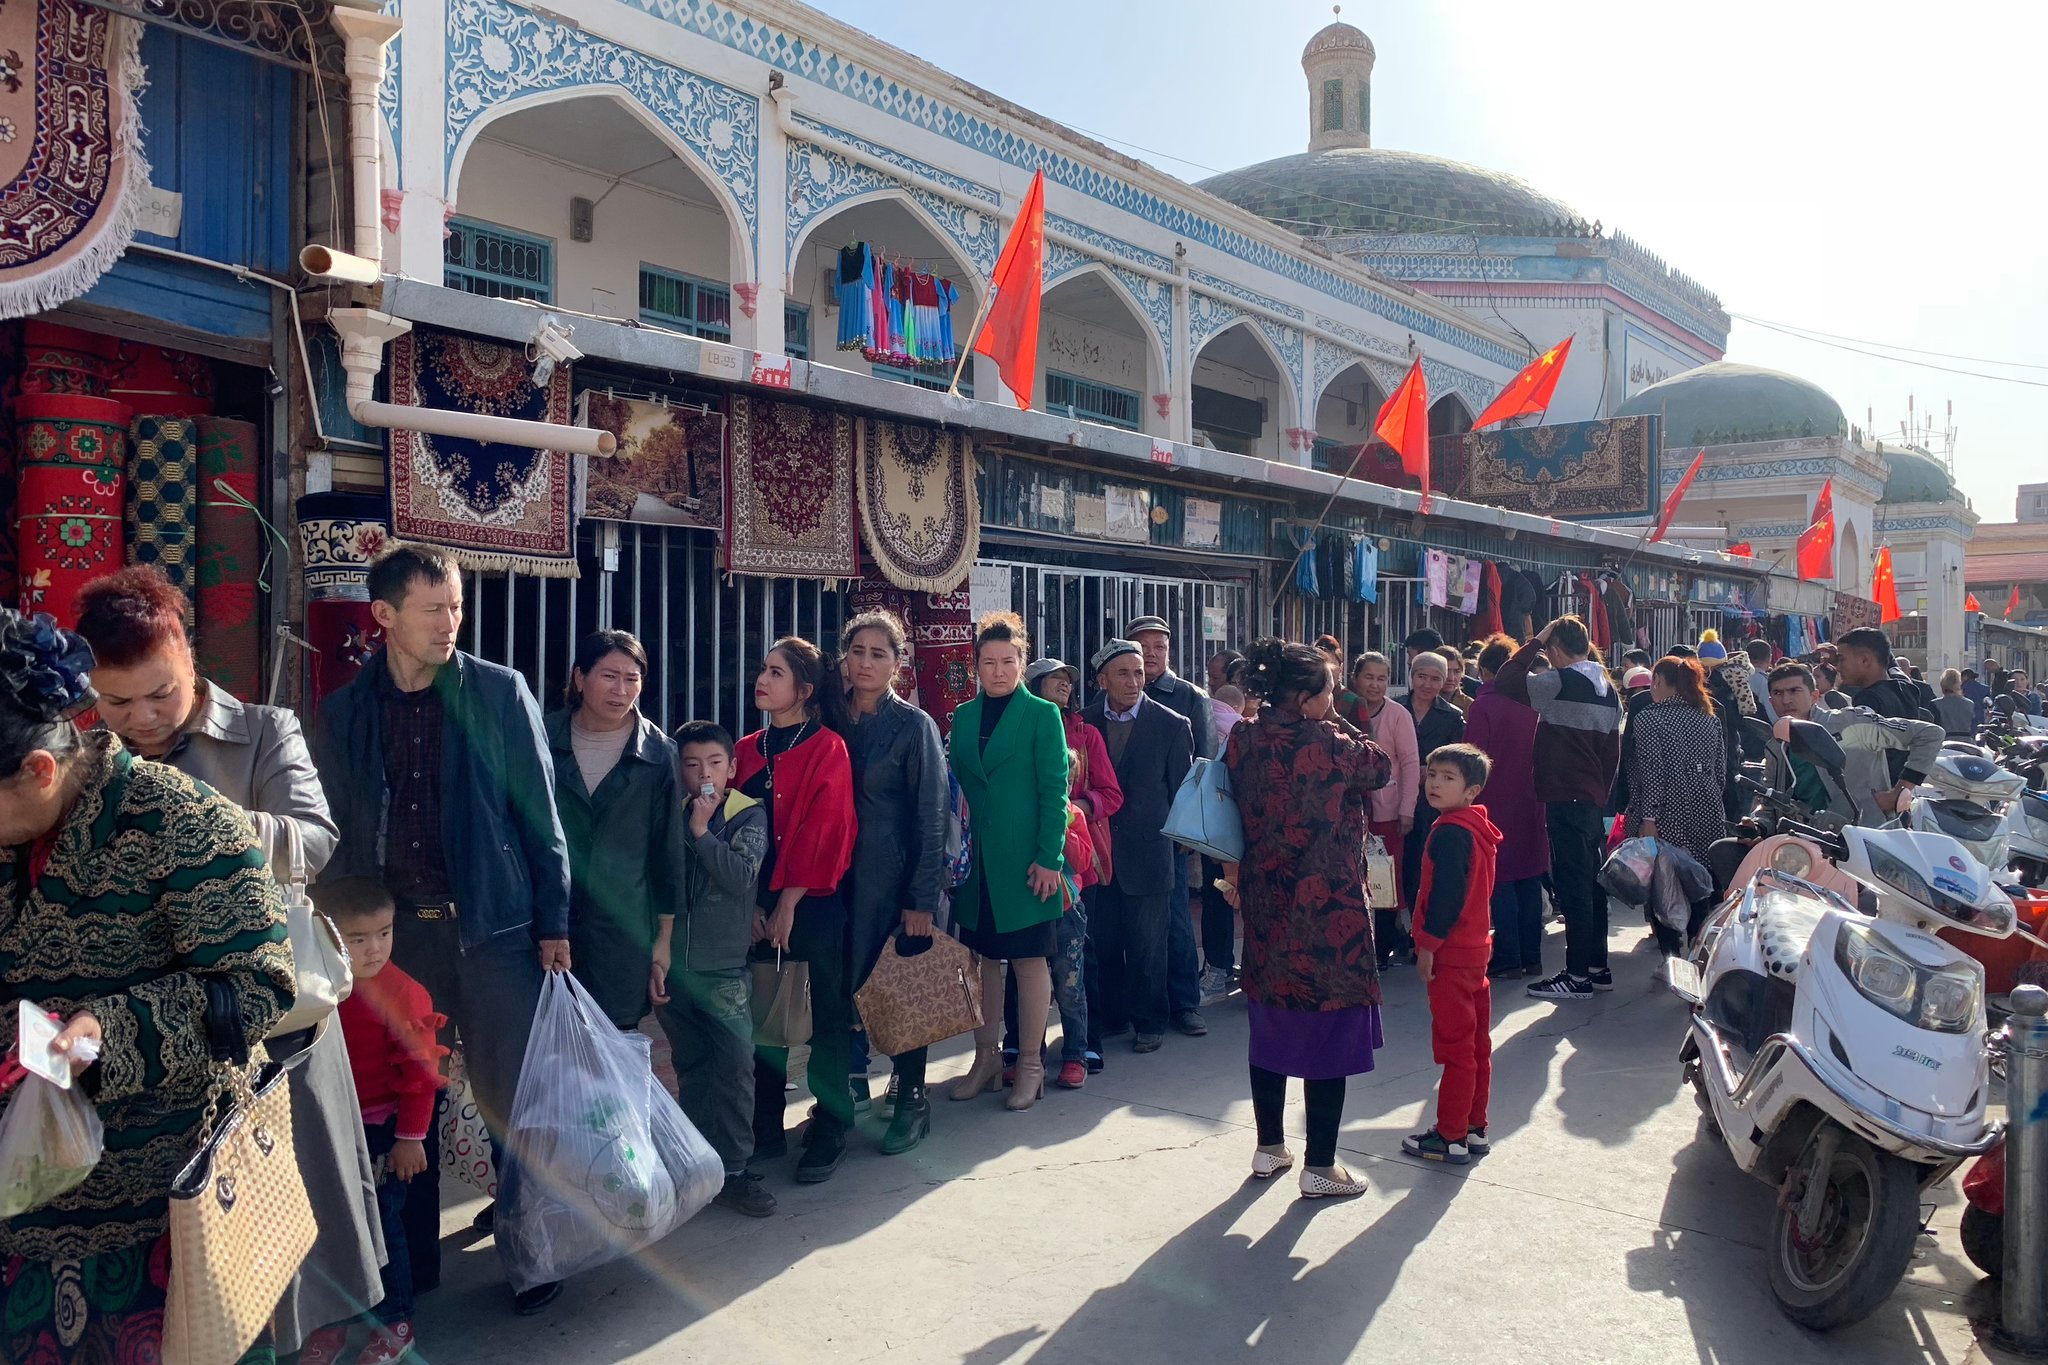 Shoppers lined up for identification checks outside the Kashgar Bazaar last fall. Members of the largely Muslim Uighur minority have been under Chinese surveillance and persecution for years. Credit Paul Mozur